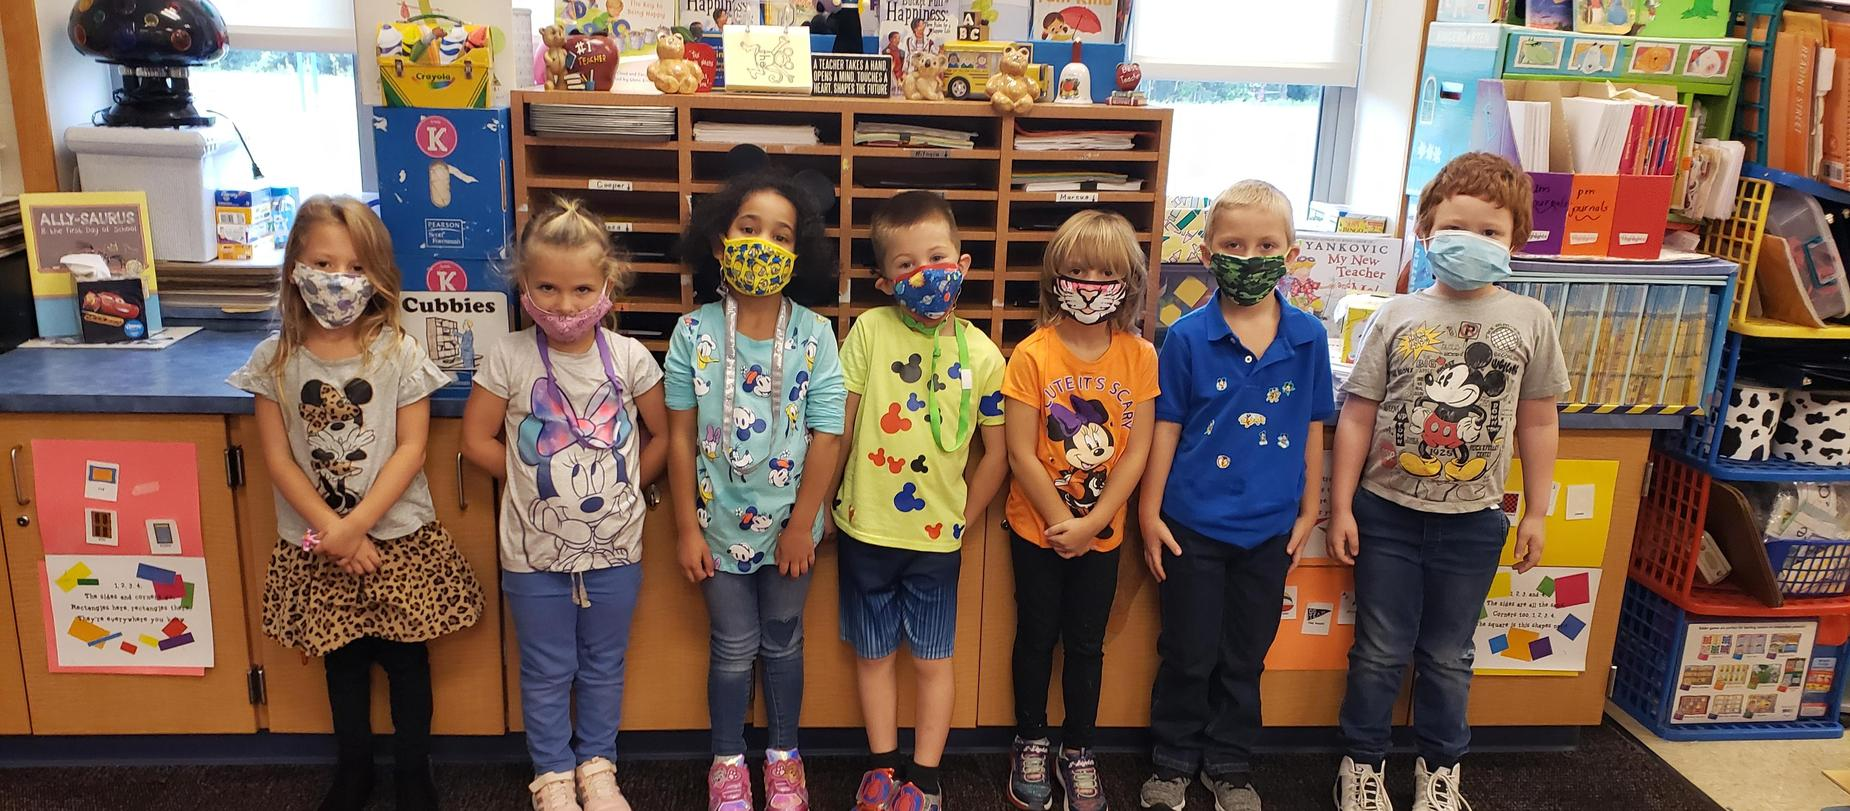 kindergarten students dressed in Mickey Mouse shirts